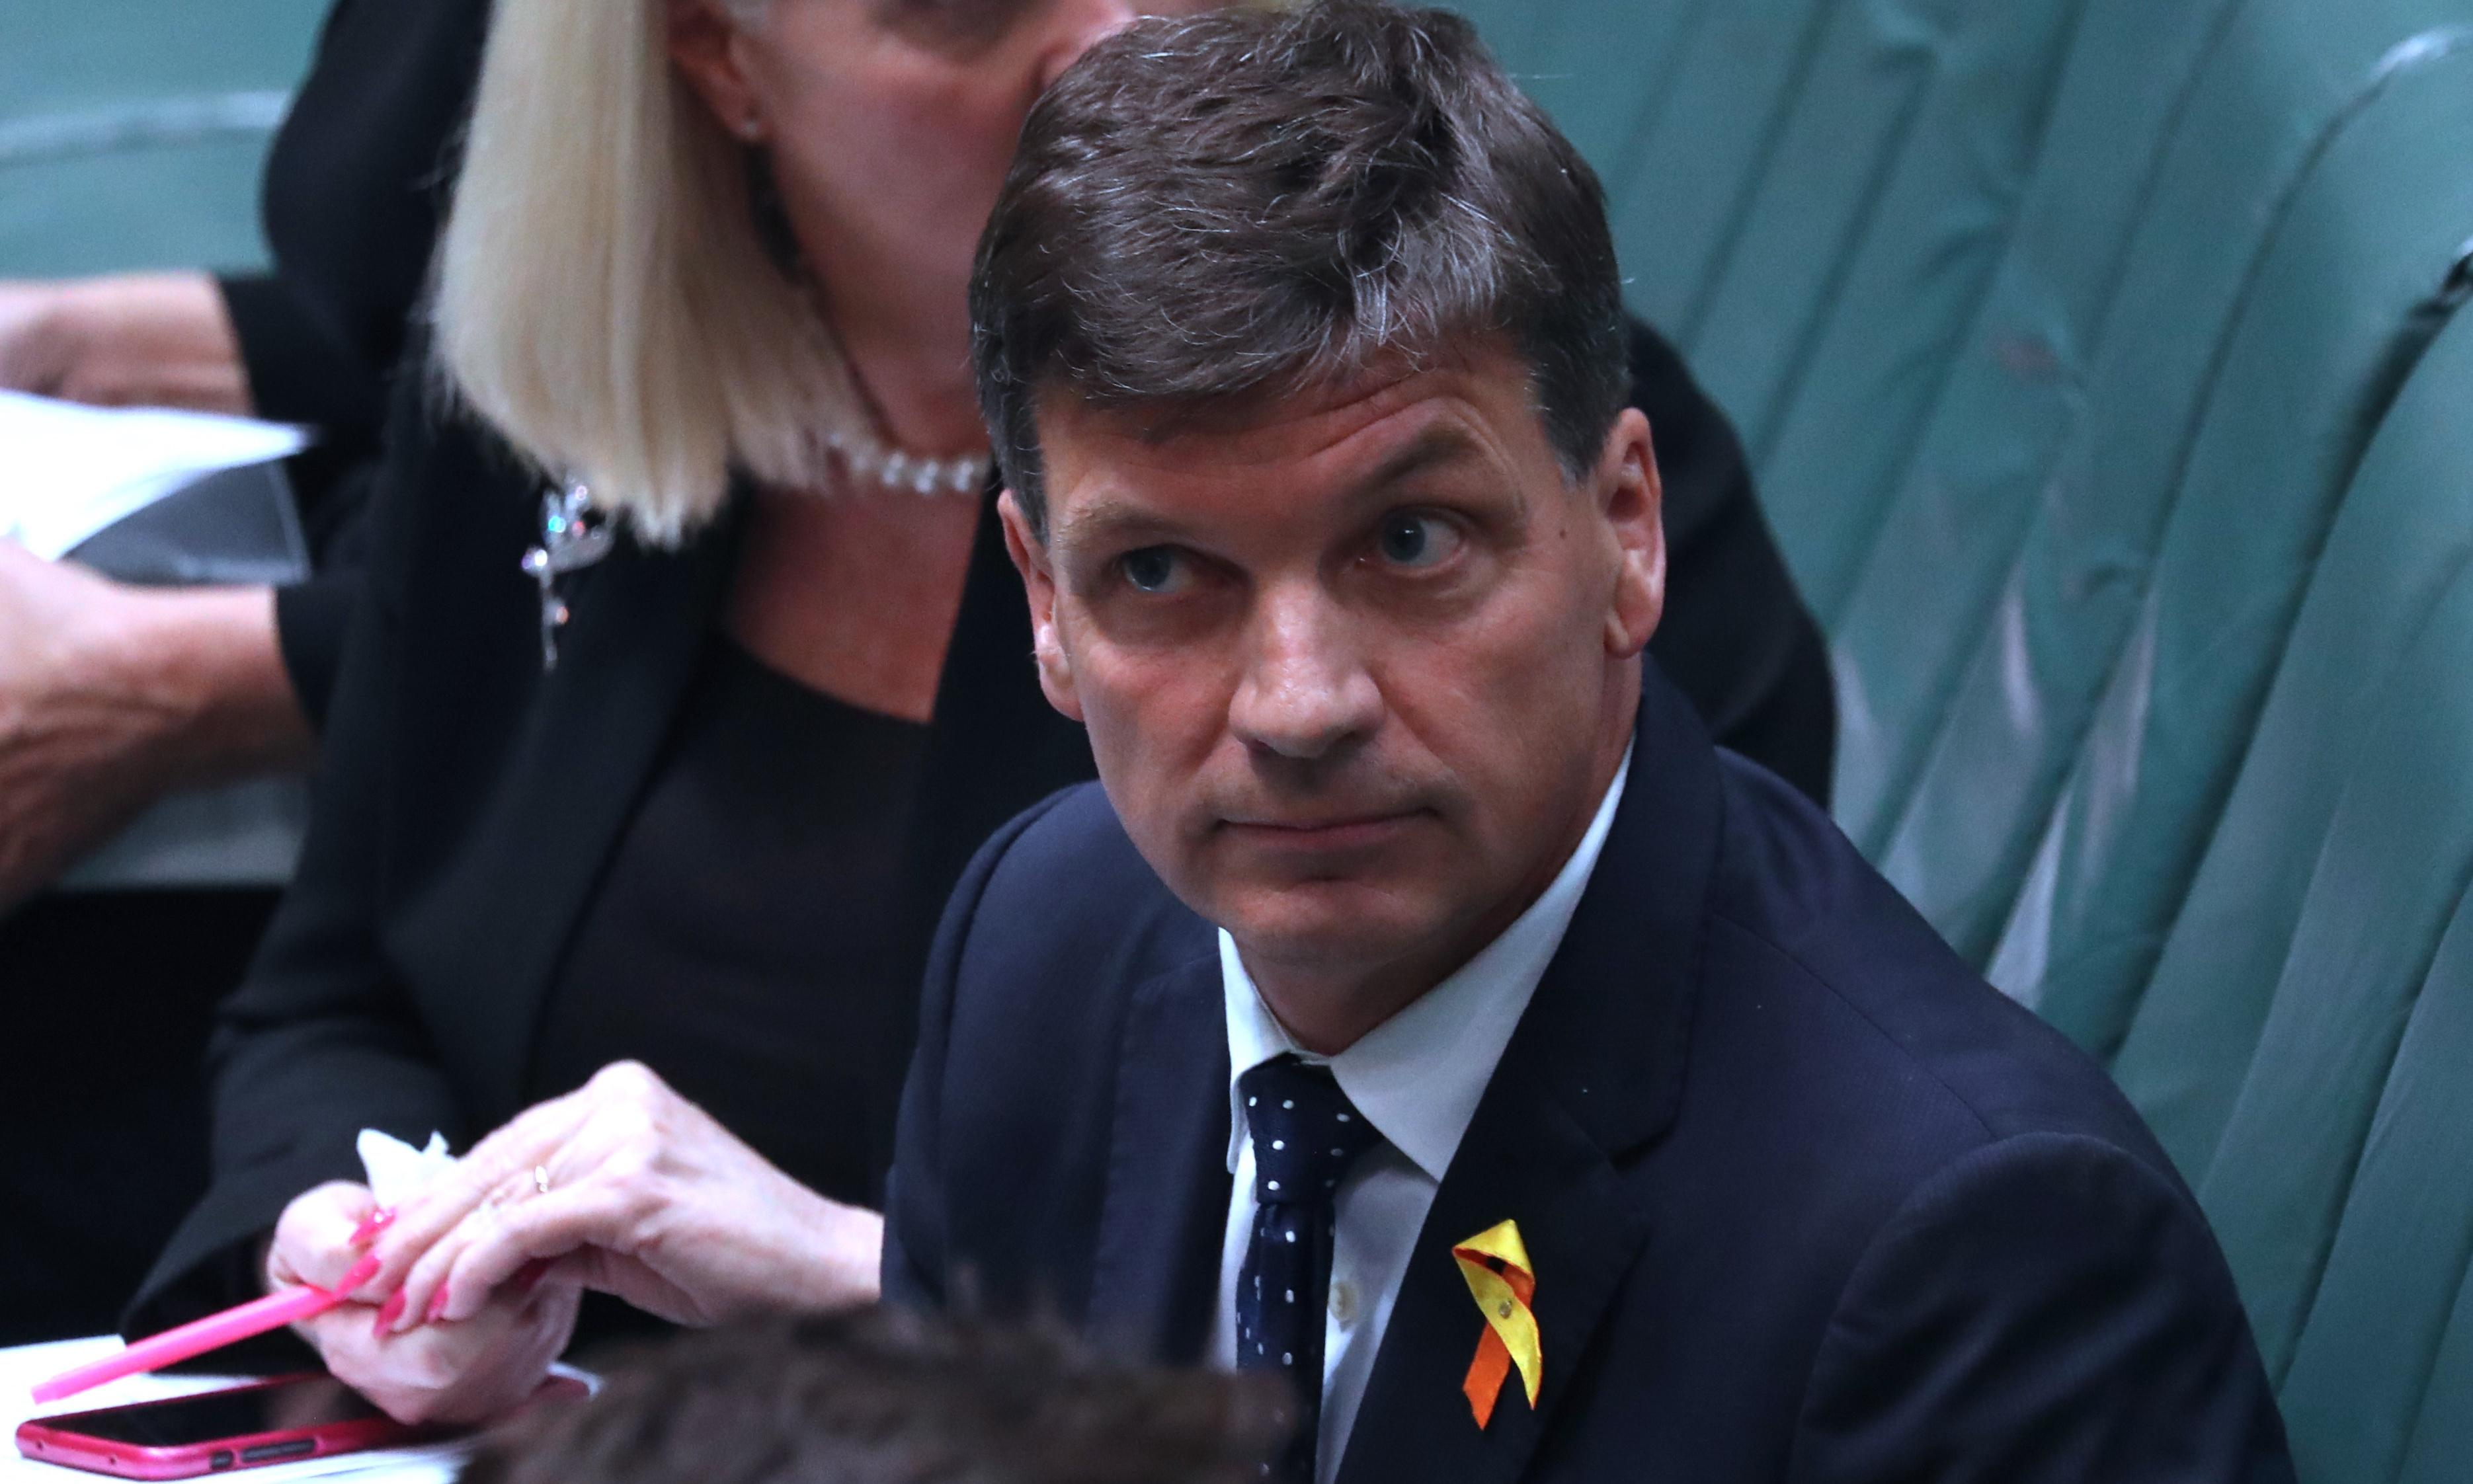 Environment officials sensitive about Angus Taylor grasslands meeting, emails show